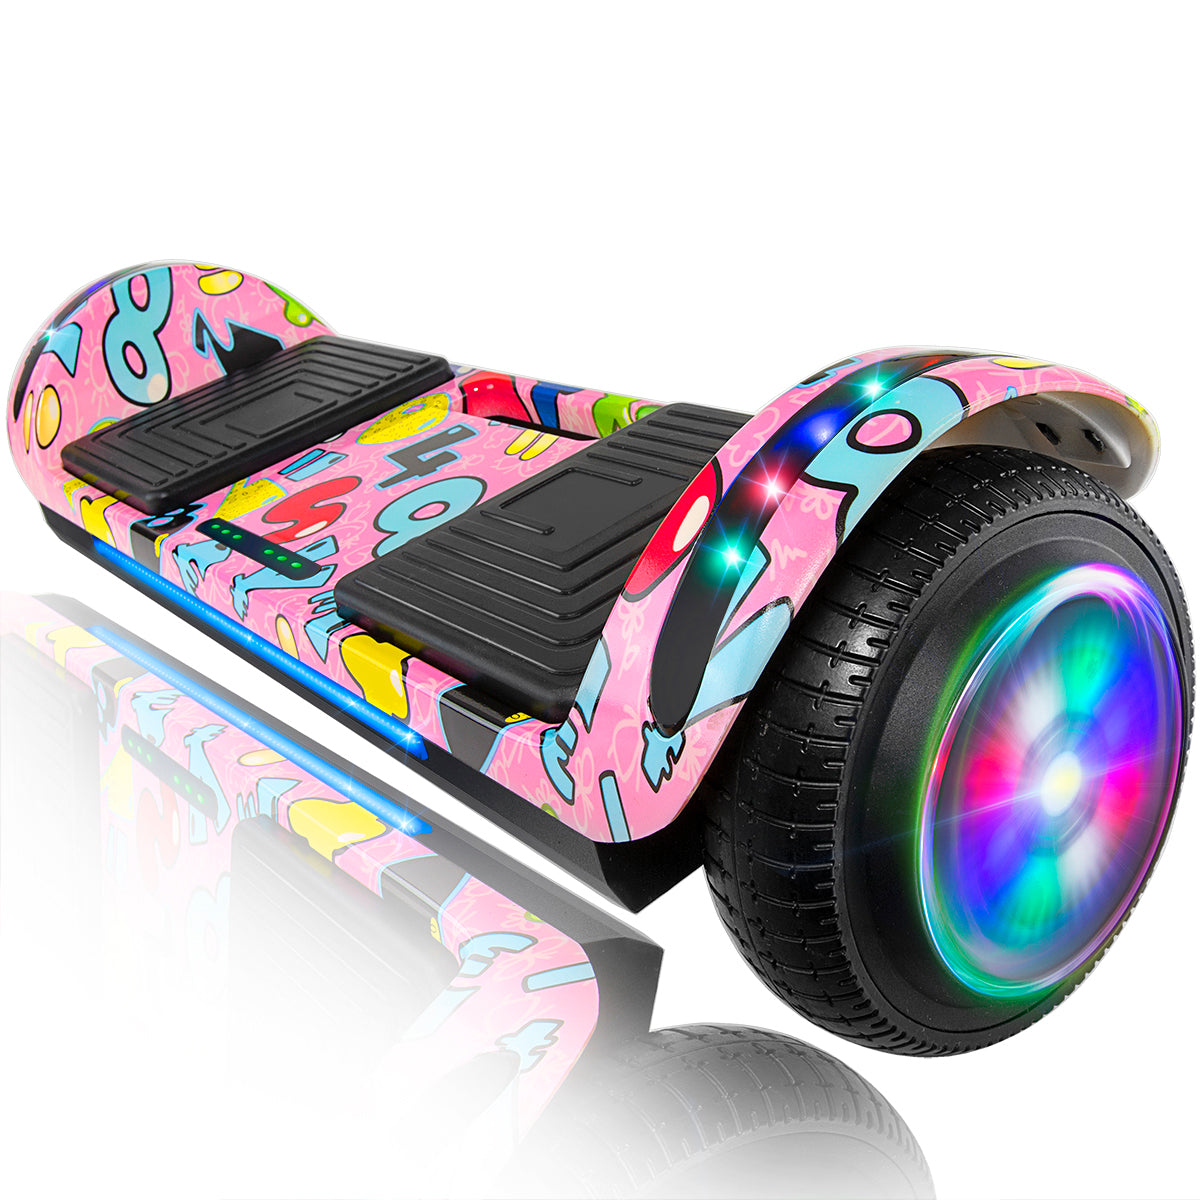 "XPRIT 6.5"" Hoverboard Self-Balance Two Wheel w/Built-in Wireless Speaker-Image Pink"